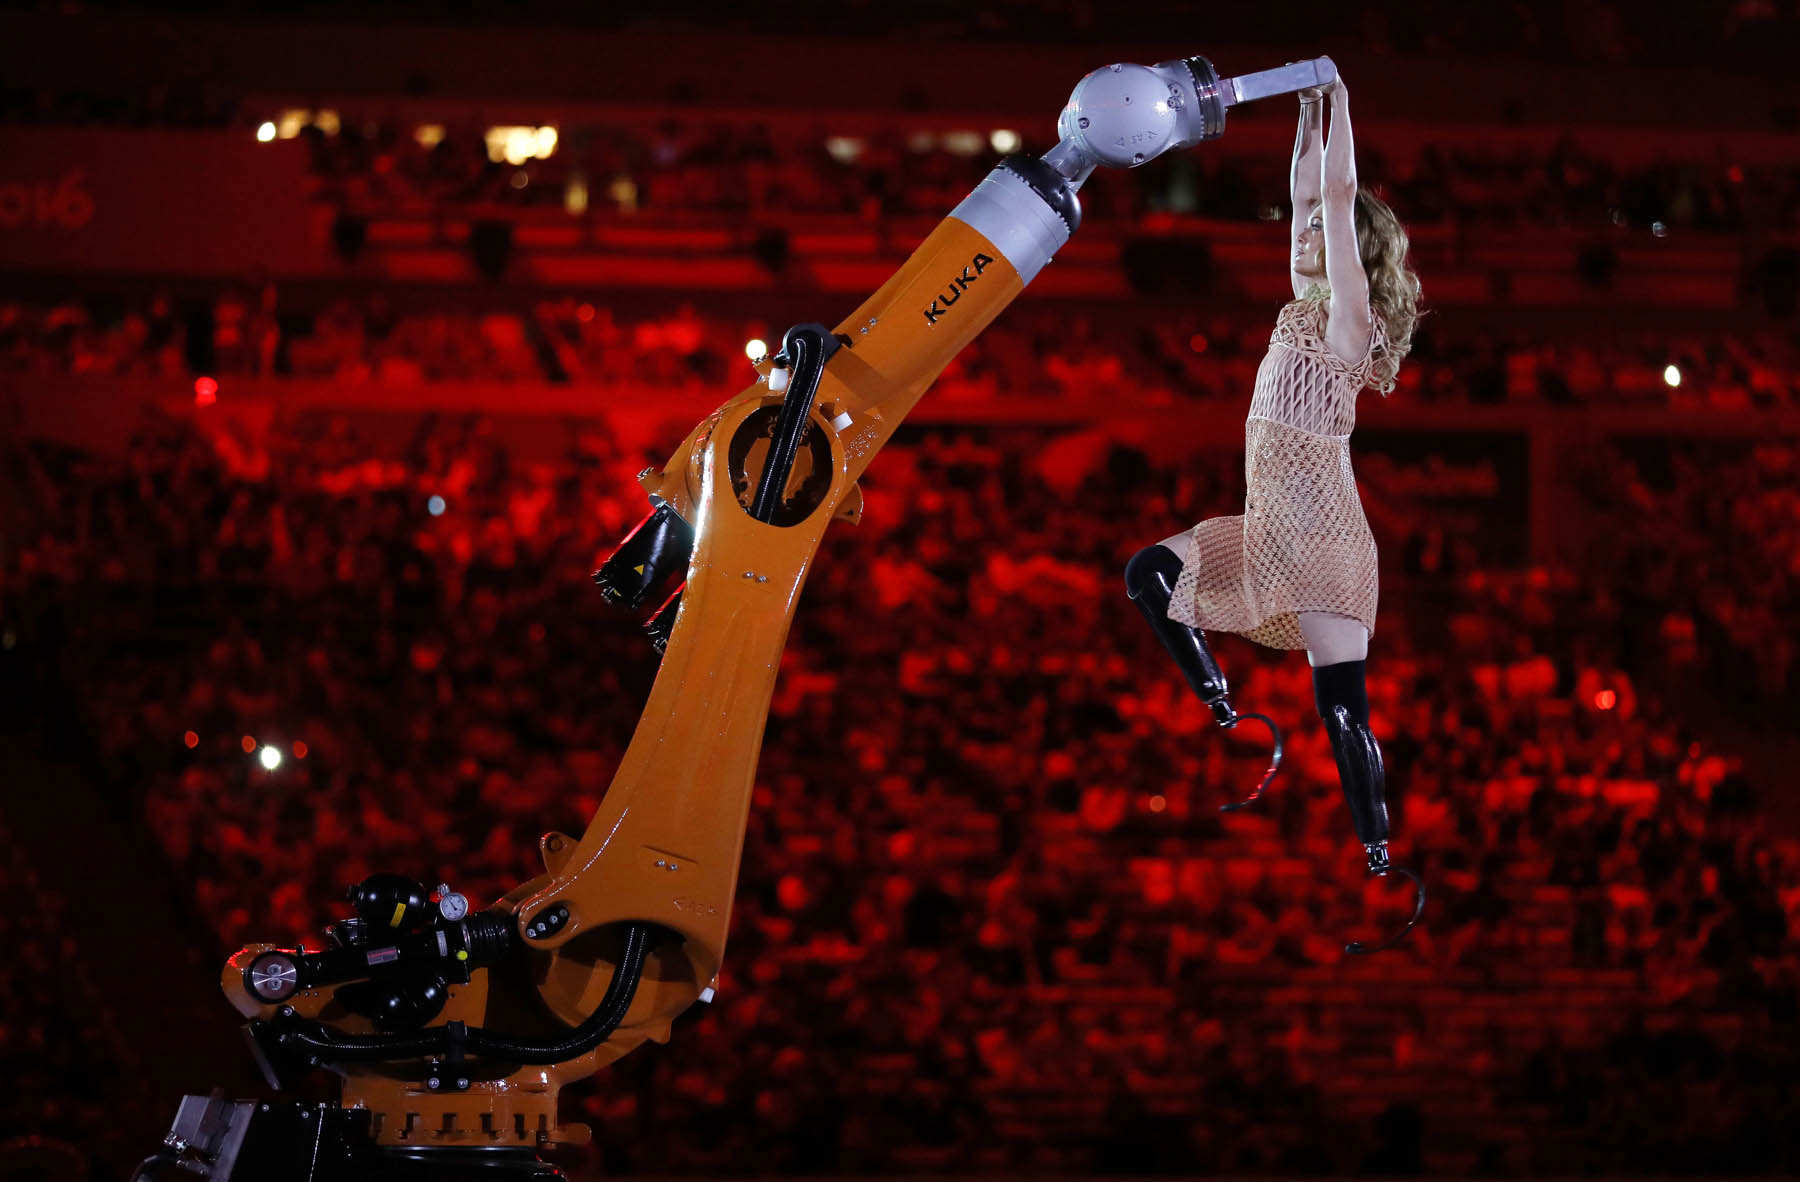 Robot arm lifting amputee Amy Purdy in stadium (© AP Images)